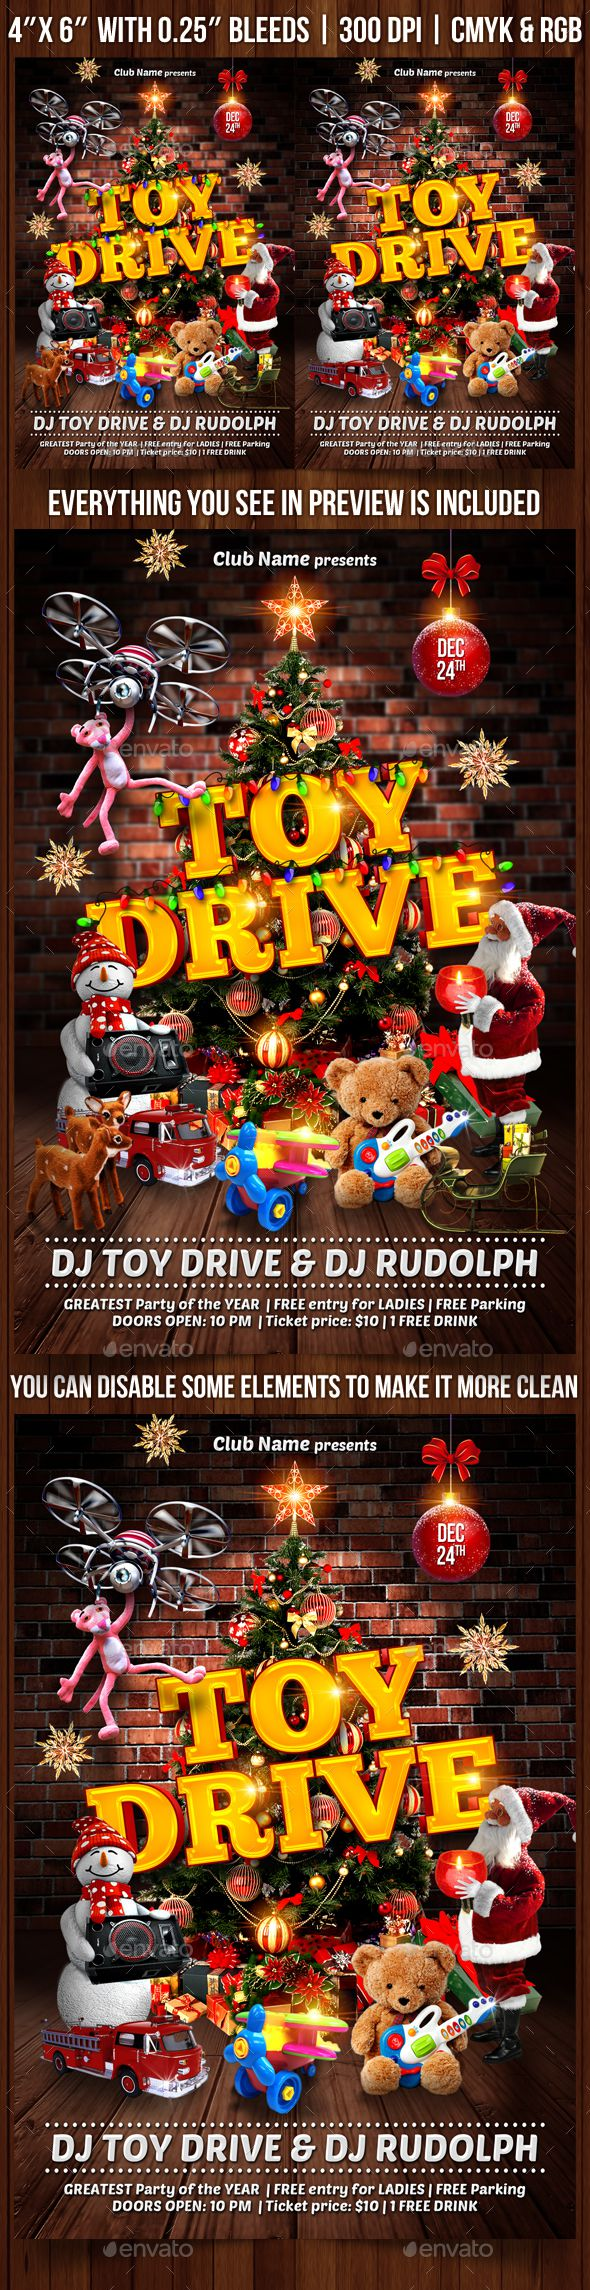 008 Frightening Toy Drive Flyer Template Highest Clarity  Holiday Download Free WordFull